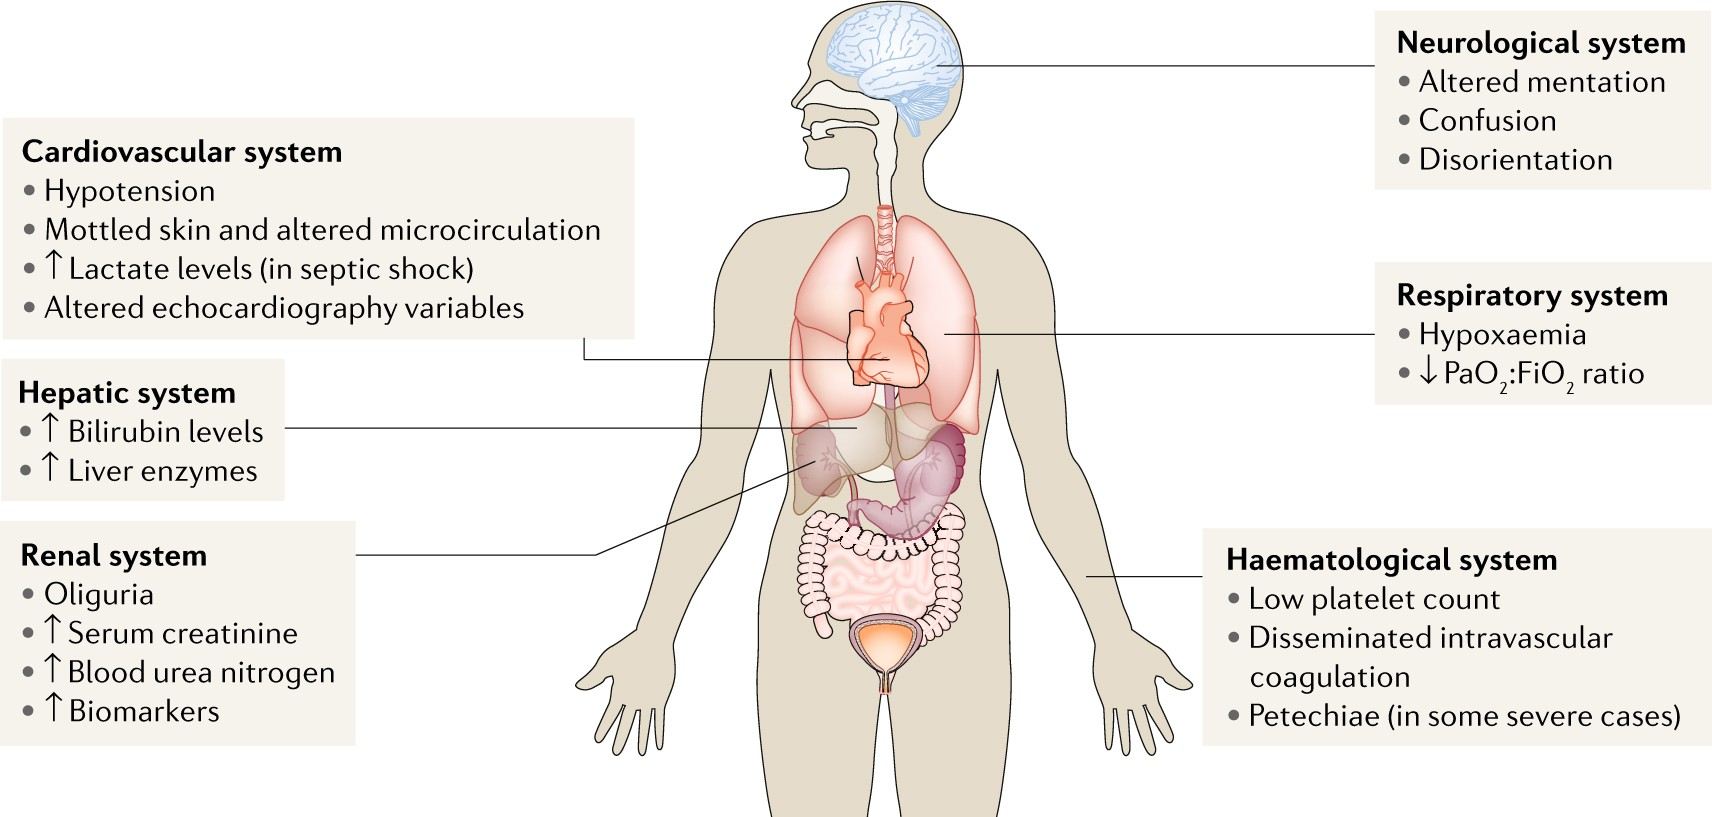 Mechanisms And Treatment Of Organ Failure In Sepsis Nature Reviews